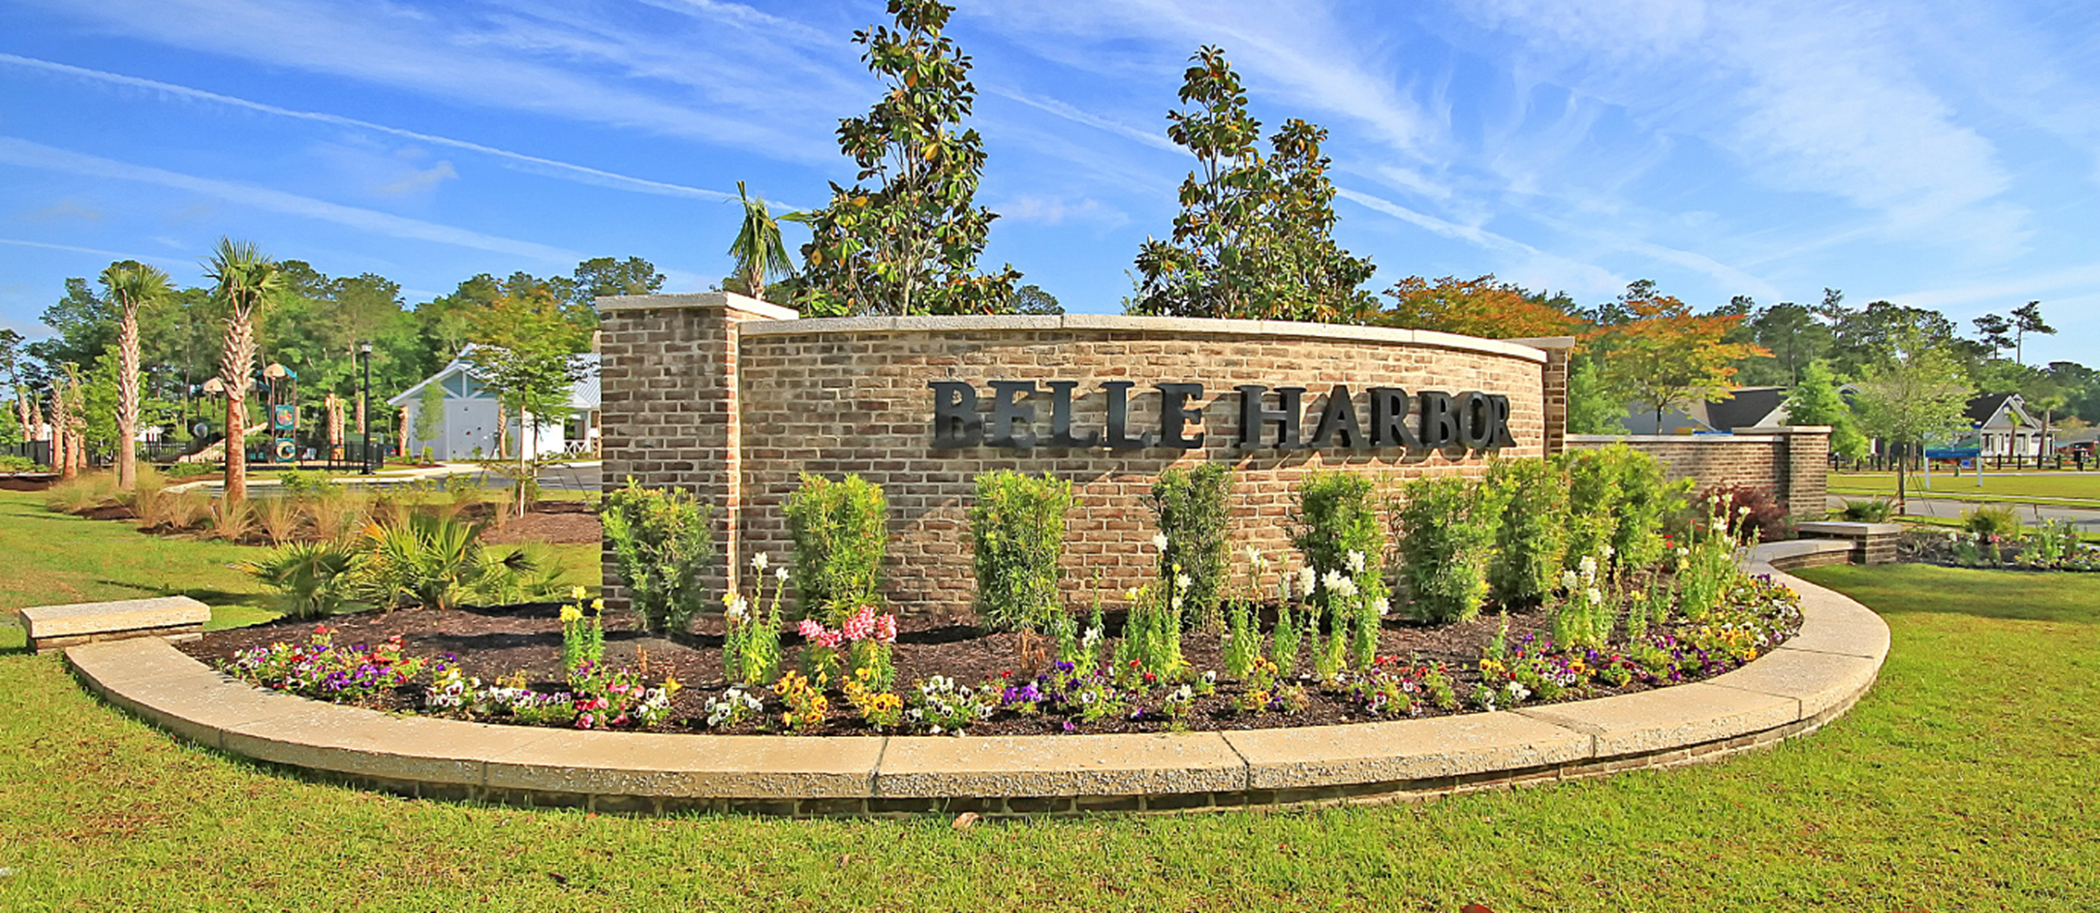 Belle Harbor Town homes Sign Board